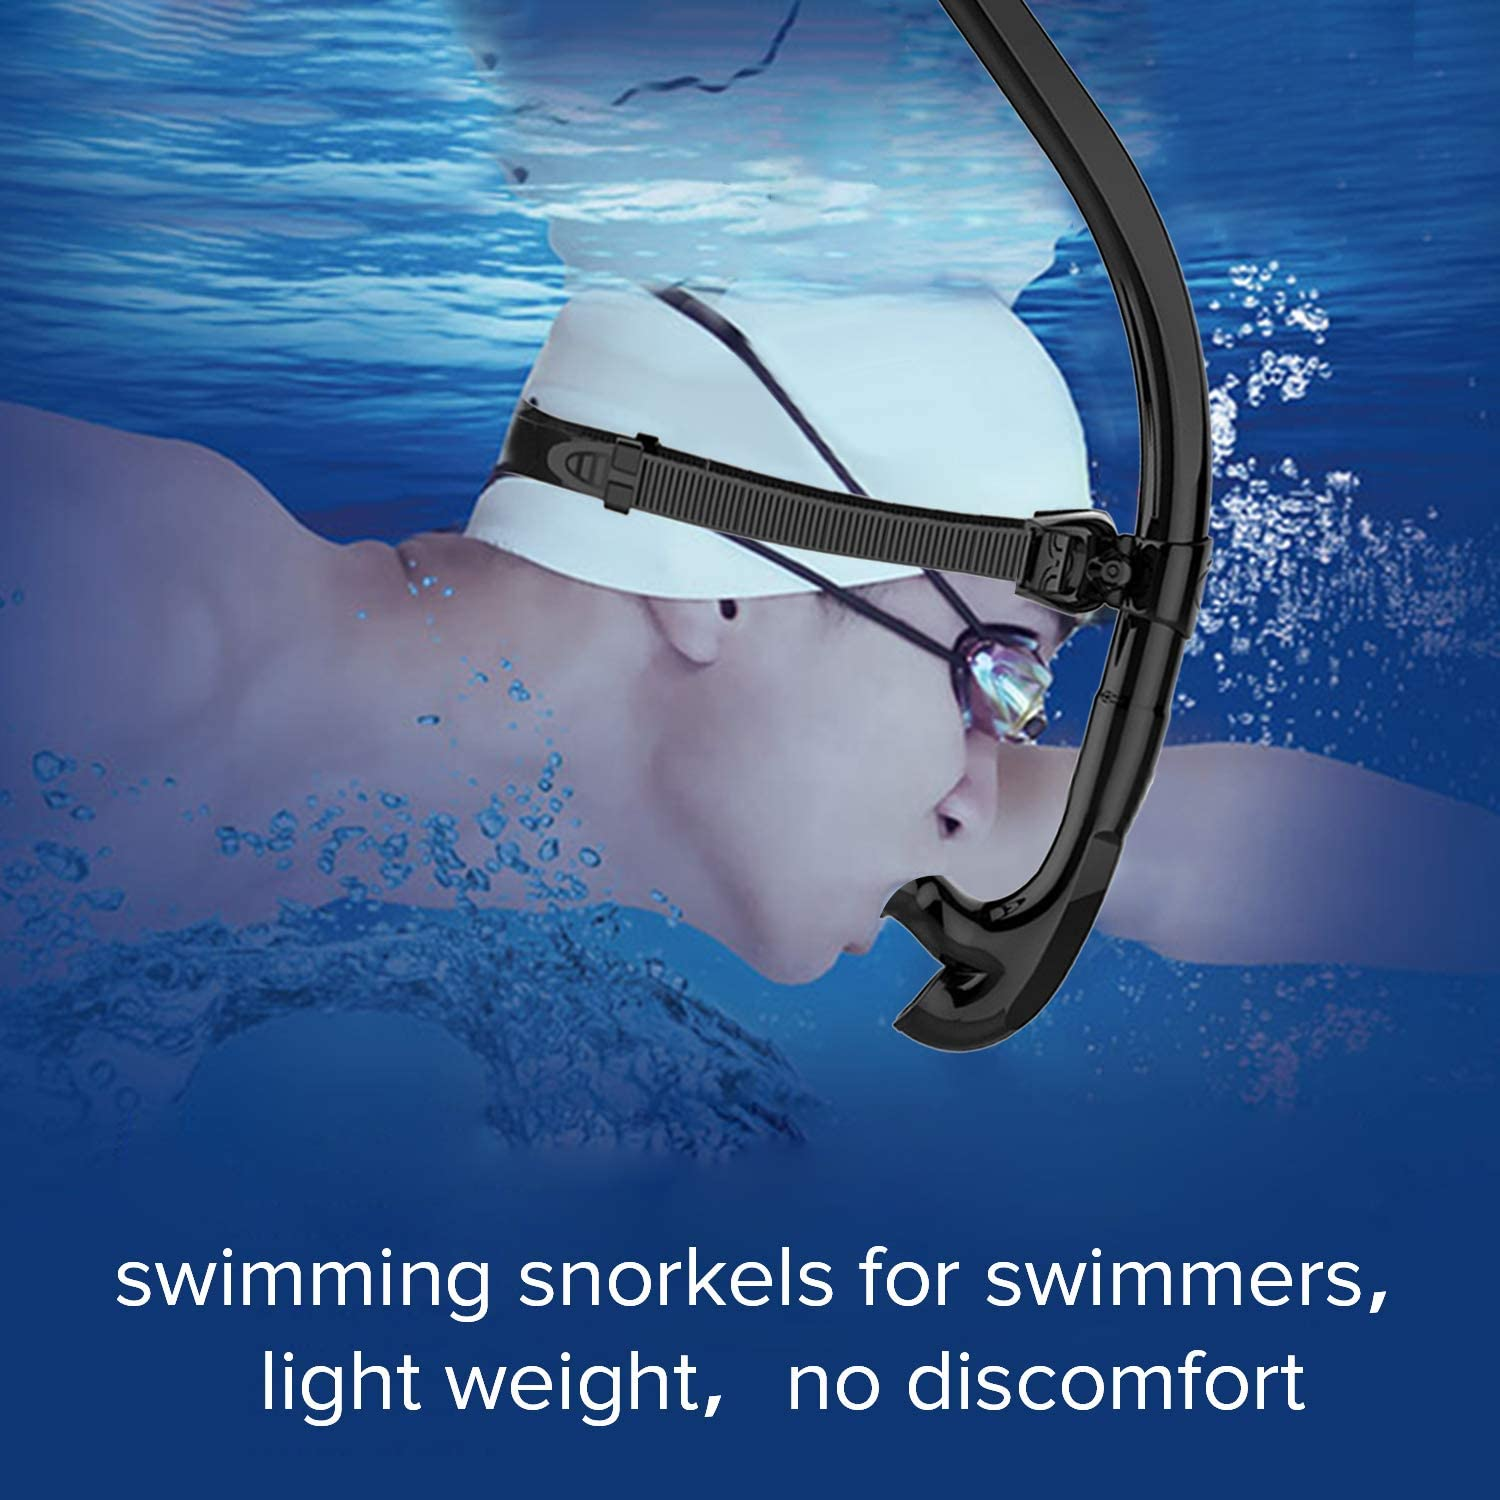 Snorkle Set for Swimming Training Suitable for Adult and Kids Swimmer Front Snorkeling Gear with Comfortable Mouthpiece Easy Breath in Pool and Open Water GENFFY Swim Snorkel for Lap Swimming